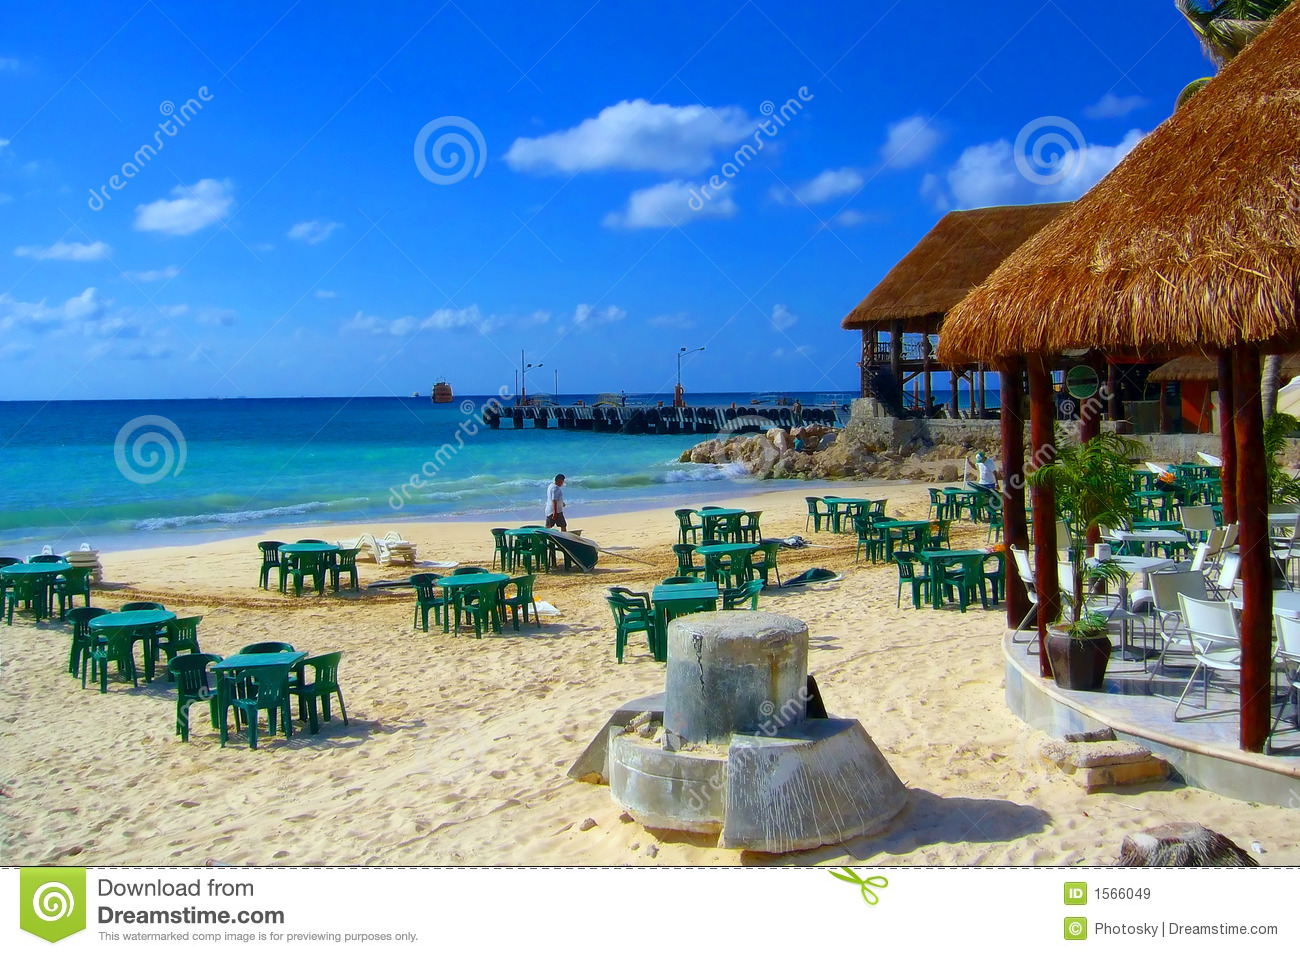 Strange Artifact In A Beach Restaurant In Cancun Stock Image Image